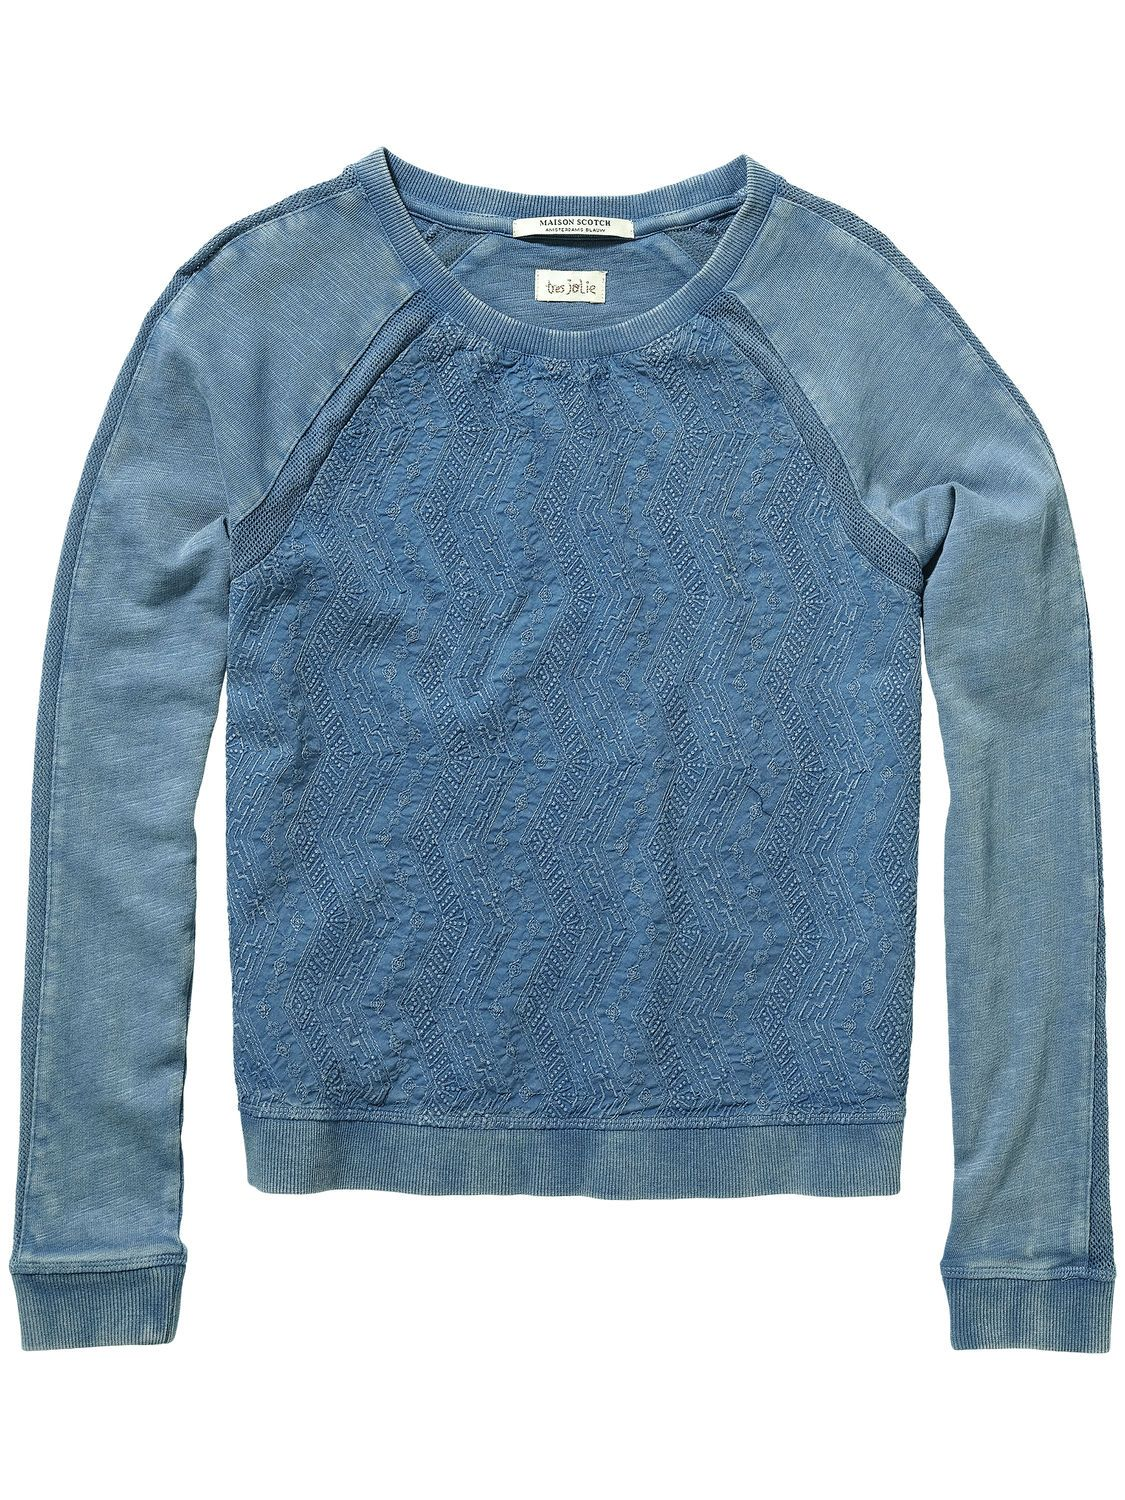 Embroidered Sweater |sweat|Woman Clothing at Scotch & Soda